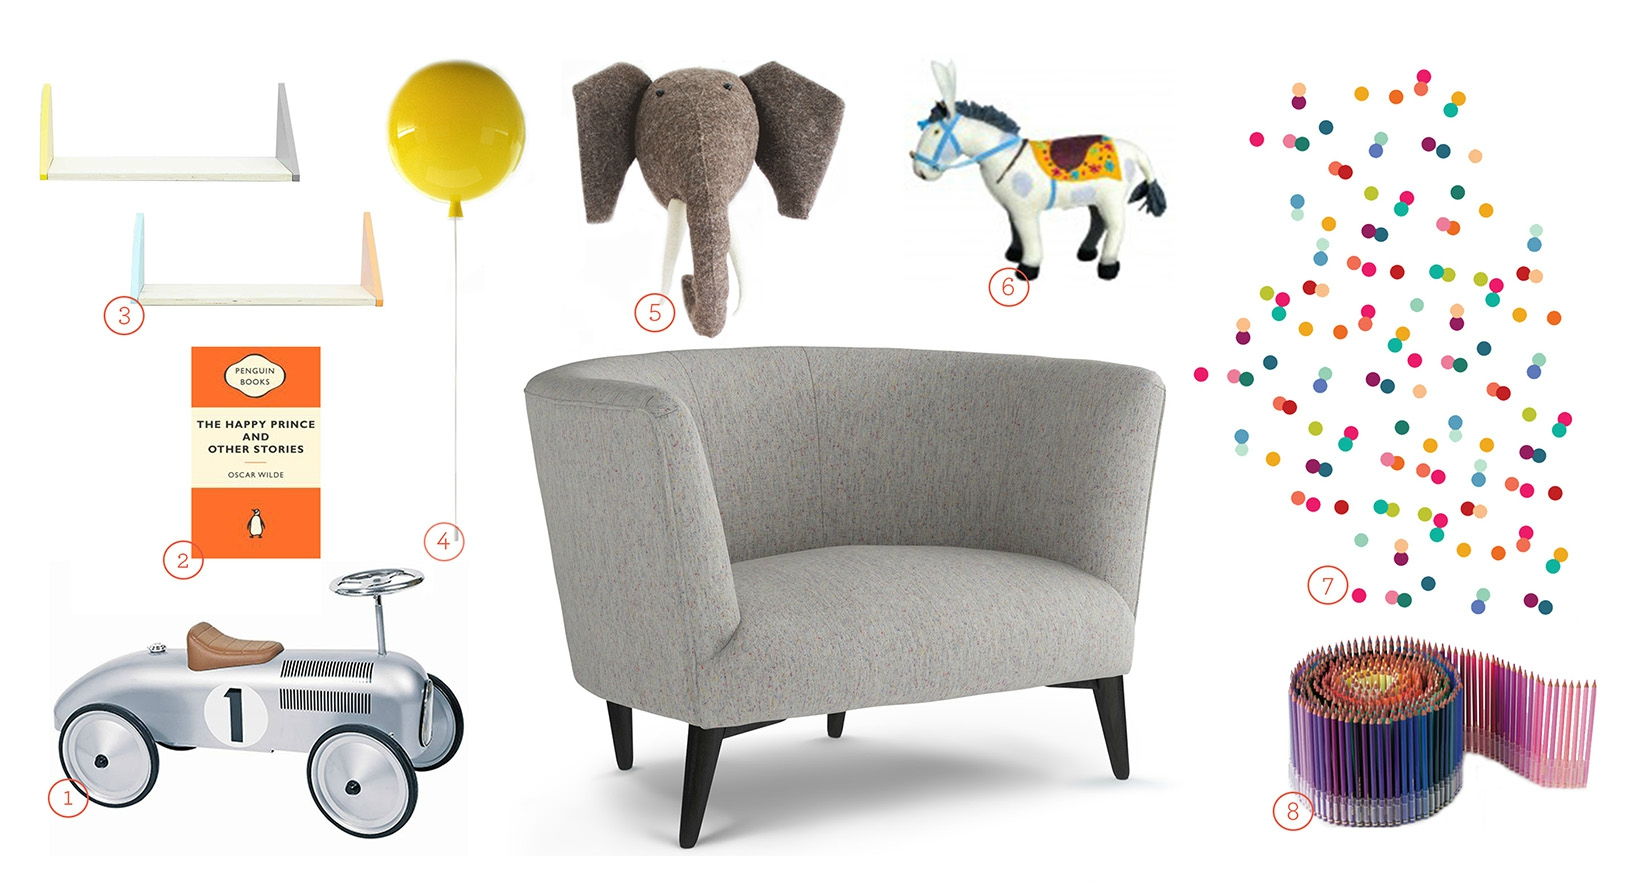 Get The Look - Elton Snuggler Upholstered in Feather Grey Fabric